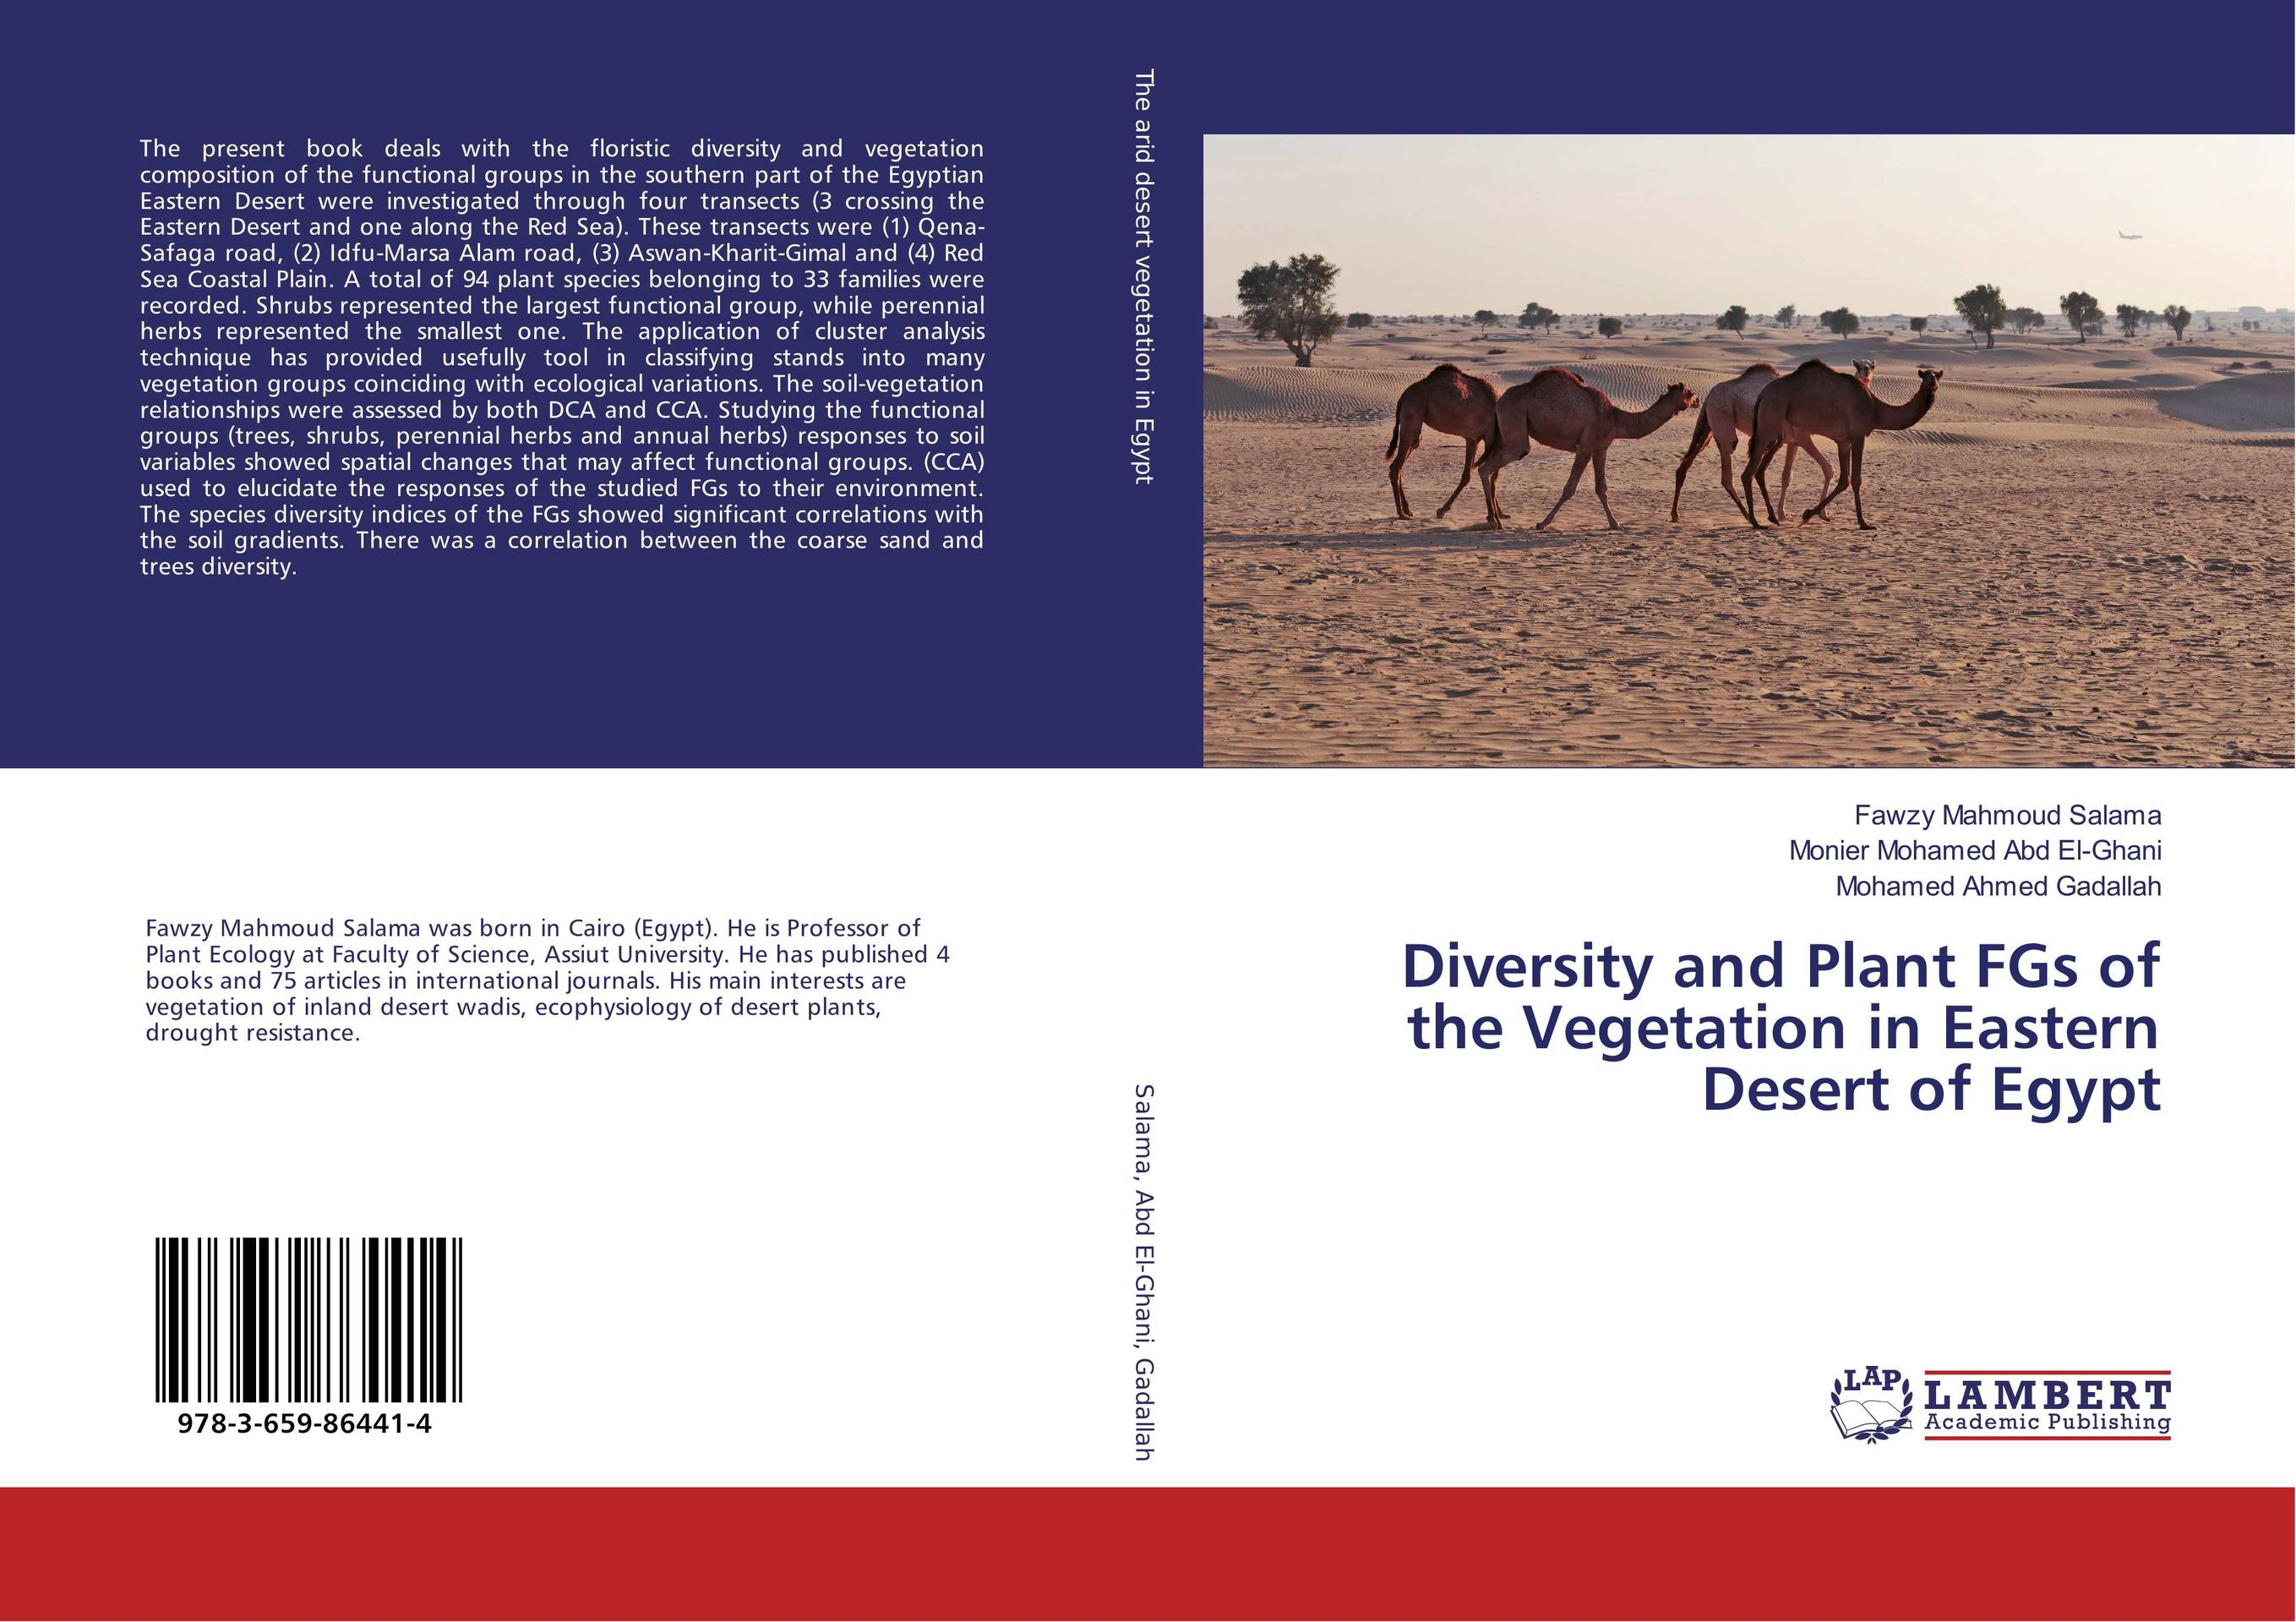 Diversity and Plant FGs of the Vegetation in Eastern Desert of Egypt linguistic diversity and social justice